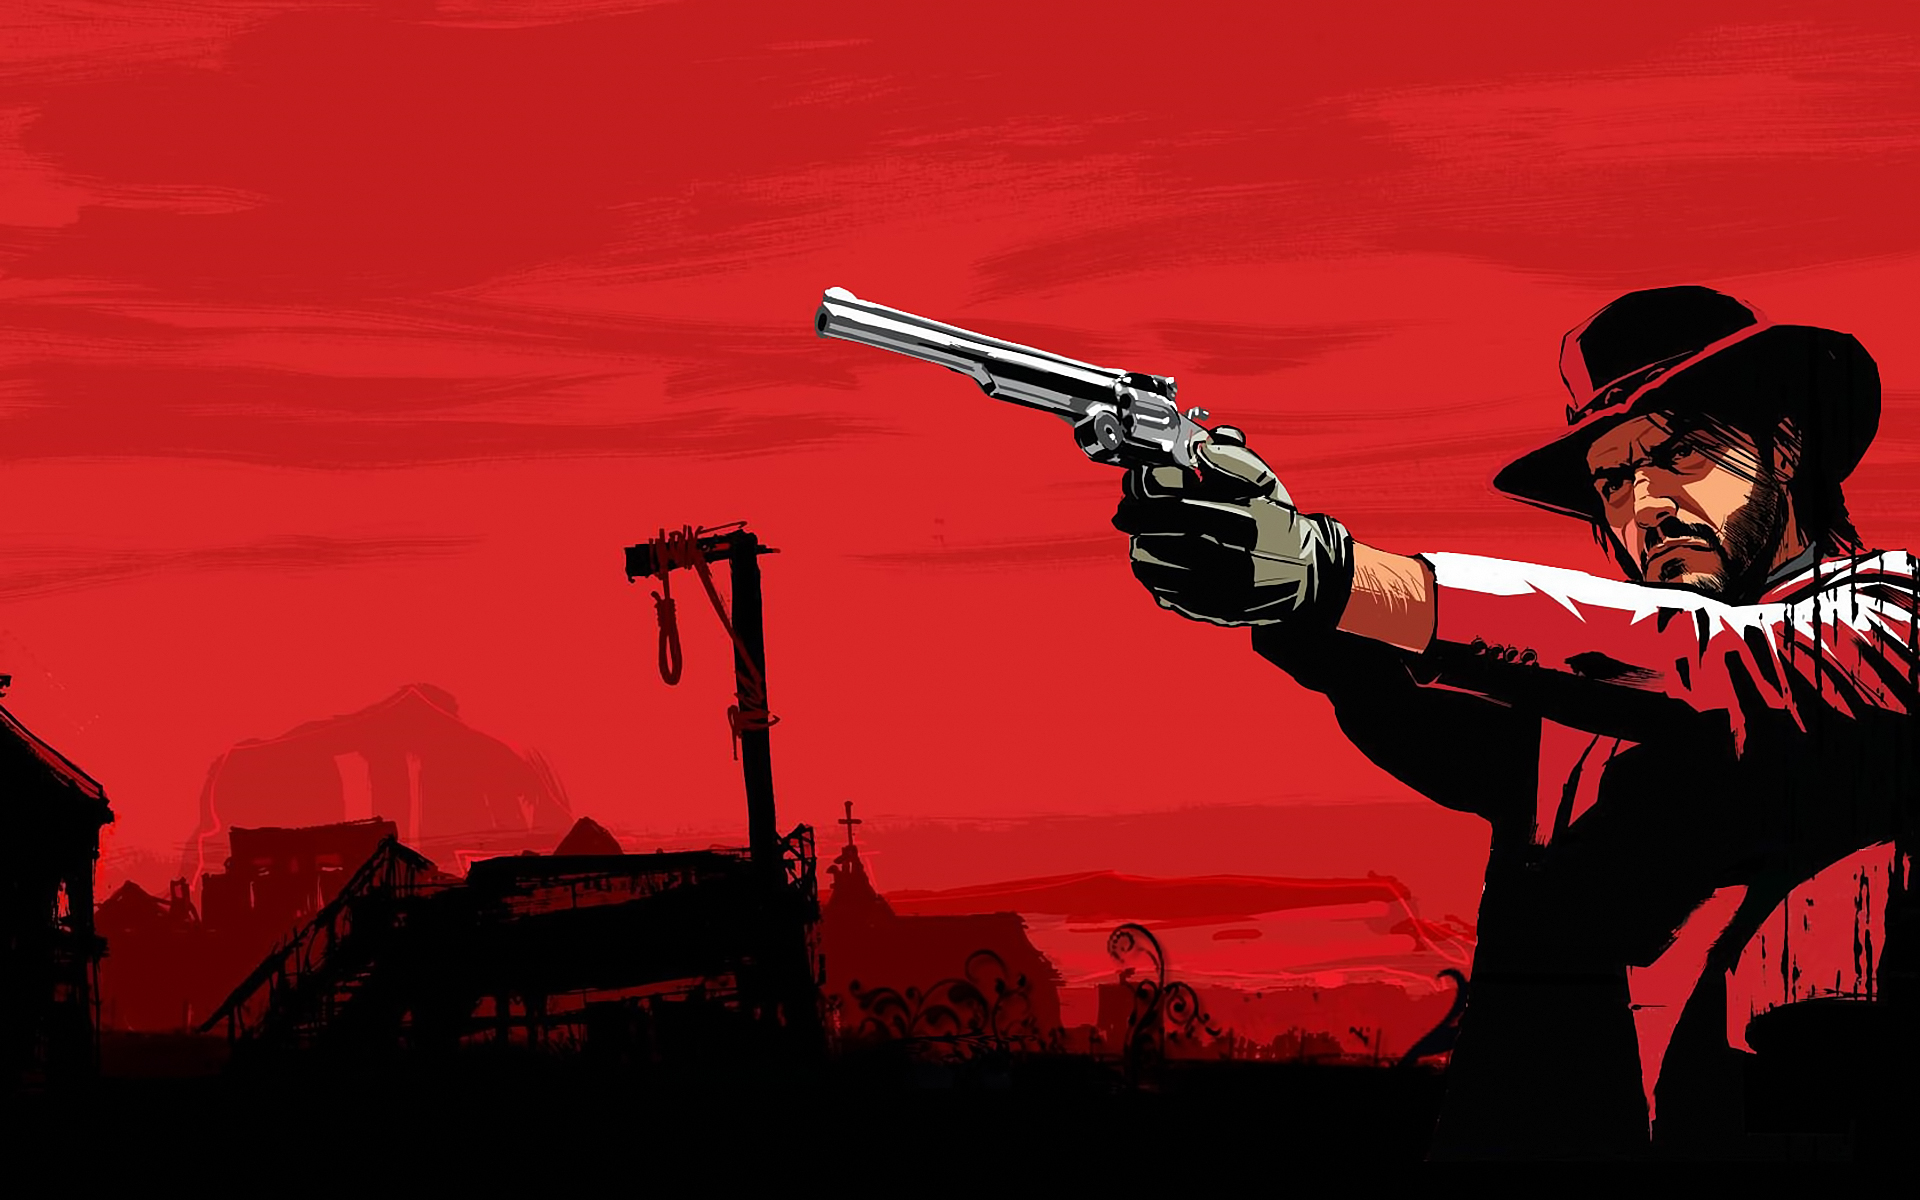 71 Red Dead Redemption Wallpaper On Wallpapersafari